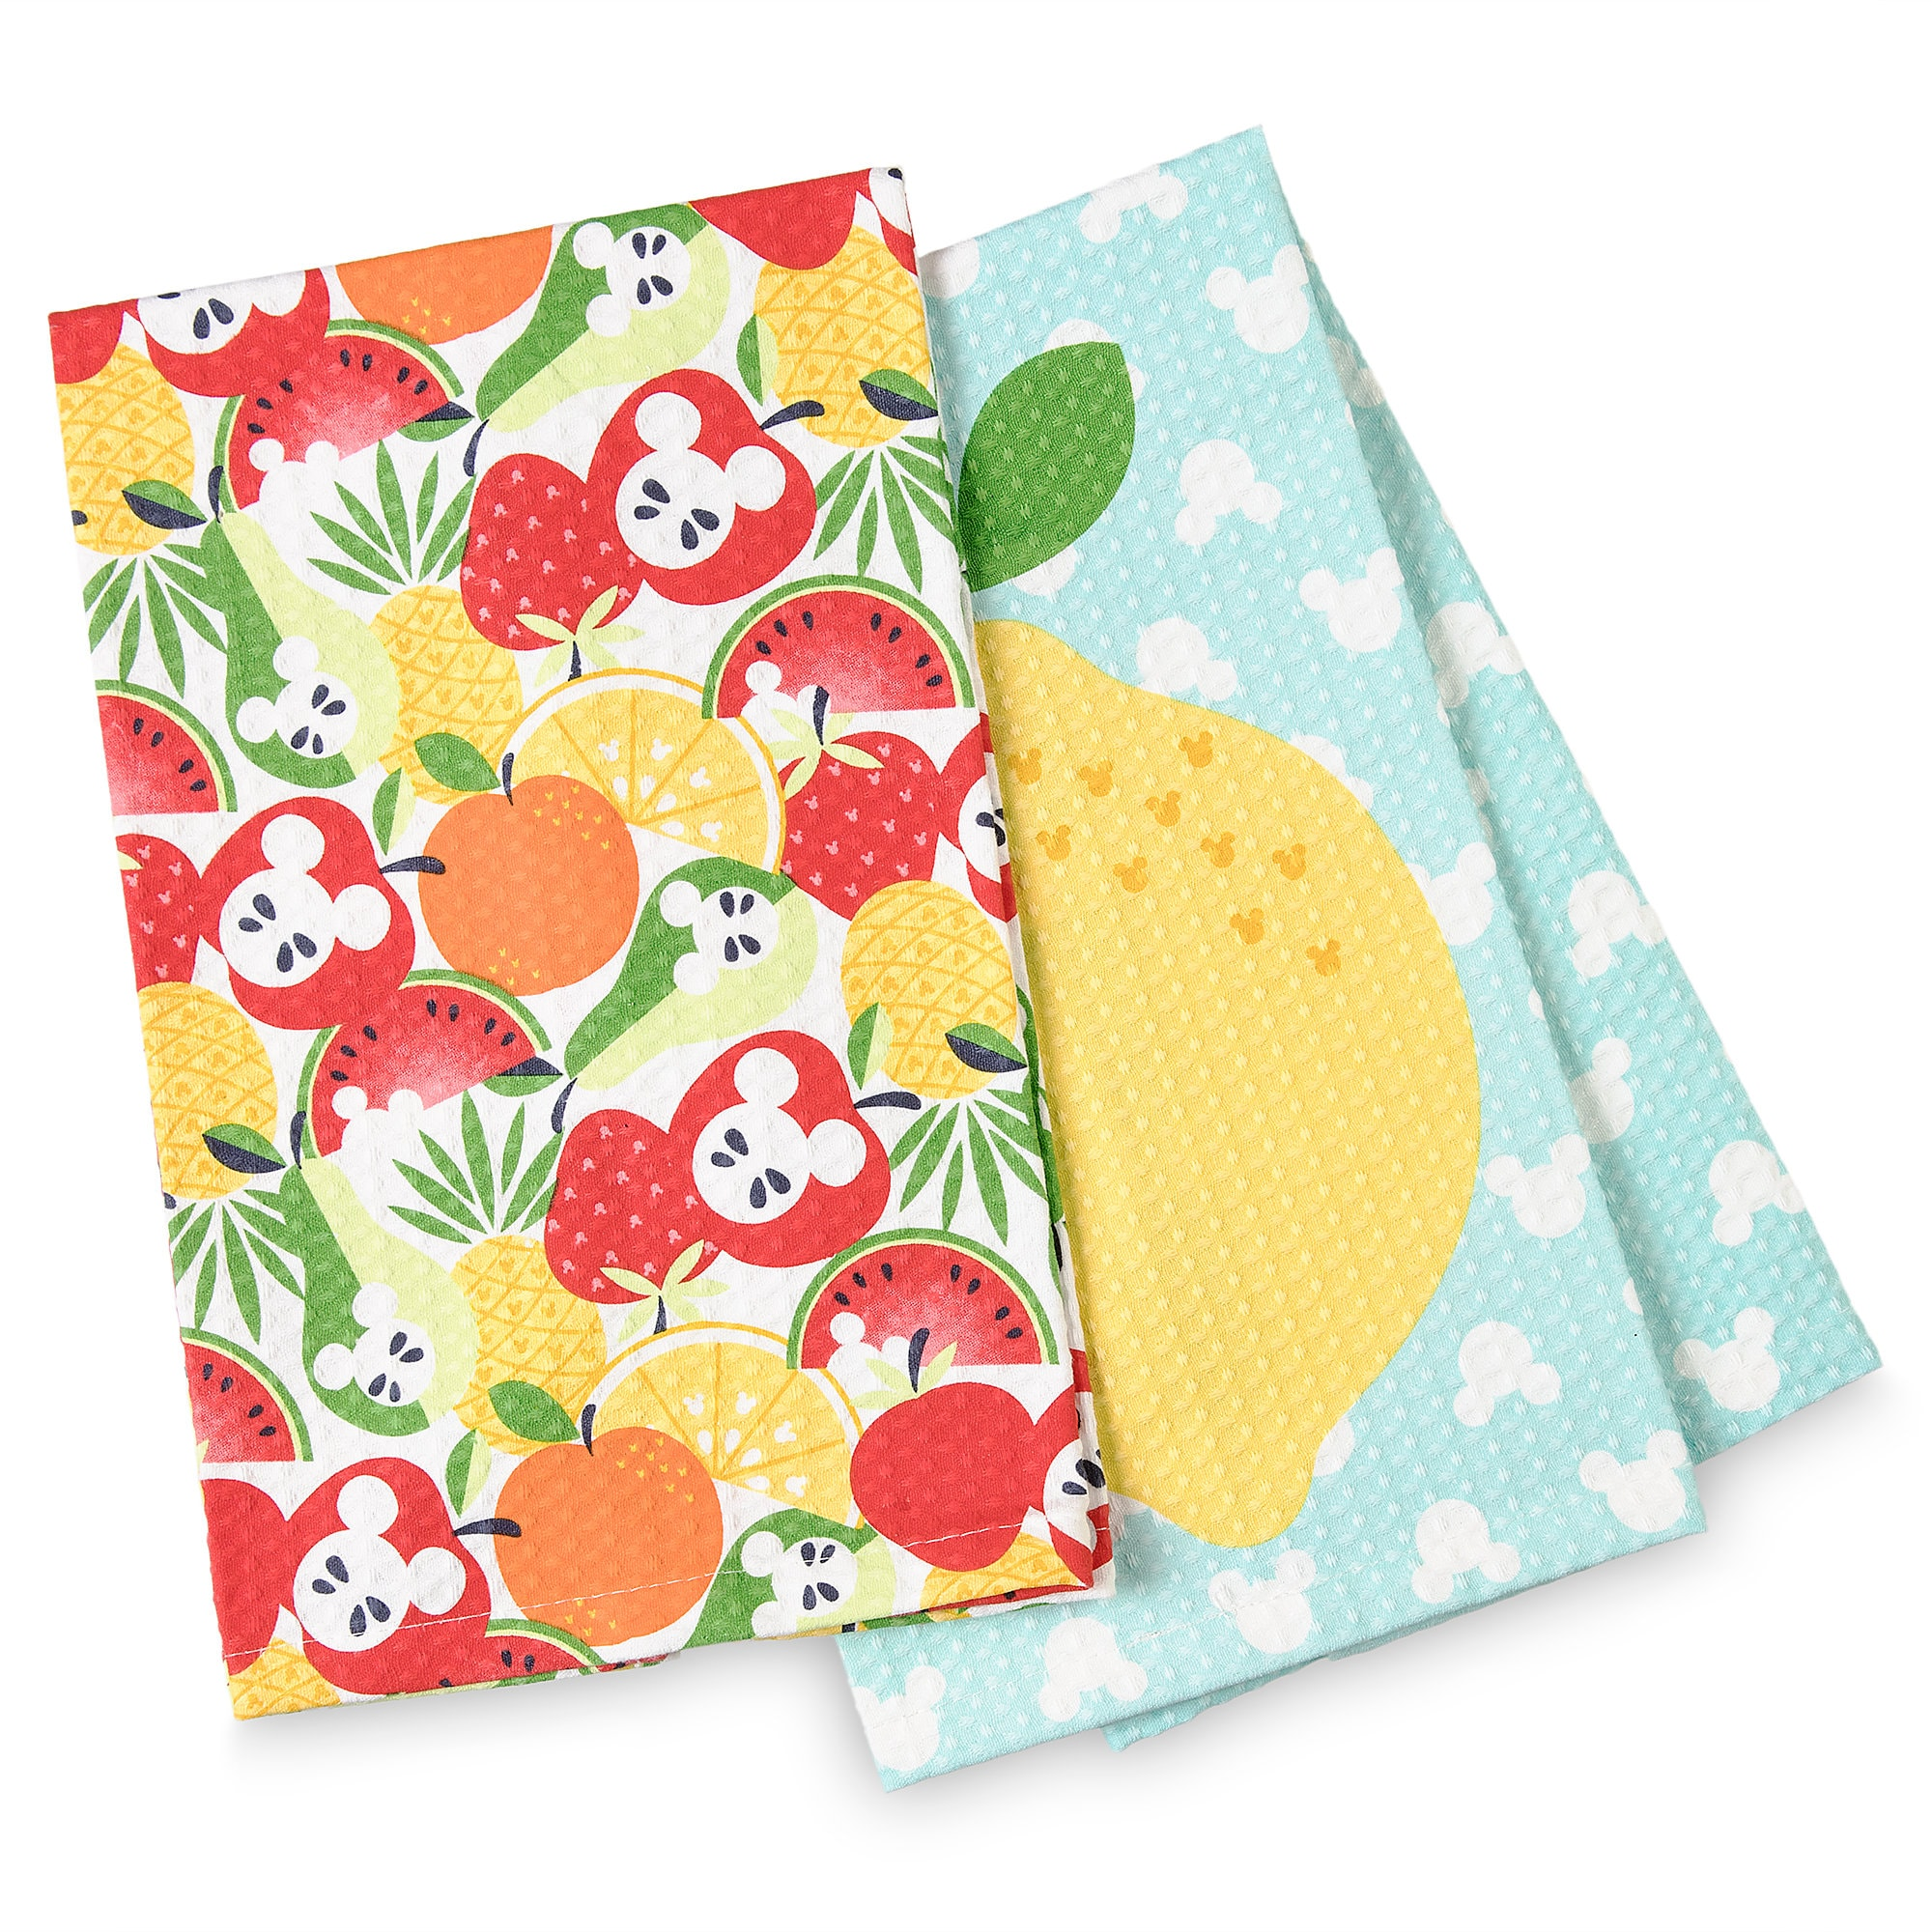 Product Image Of Mickey Mouse Kitchen Towels   Summer Fun # 1